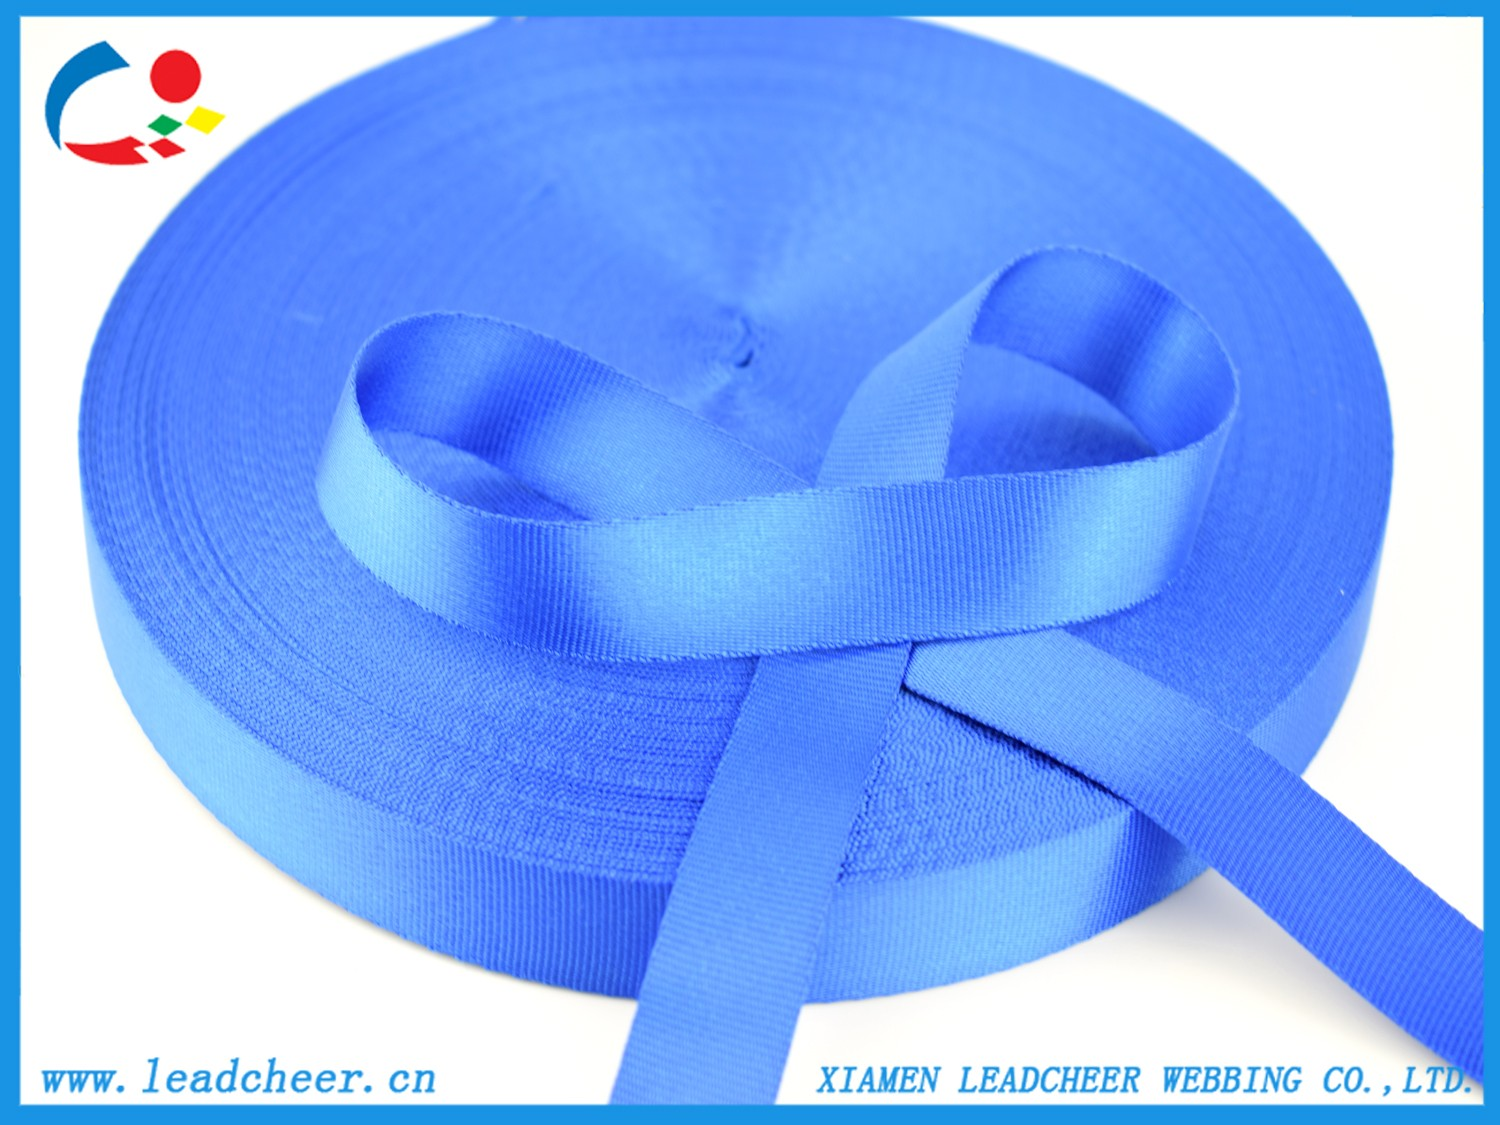 High quality Decorative Ribbon/Webbing Used for Bags/Garments/Belts Quotes,China Decorative Ribbon/Webbing Used for Bags/Garments/Belts Factory,Decorative Ribbon/Webbing Used for Bags/Garments/Belts Purchasing